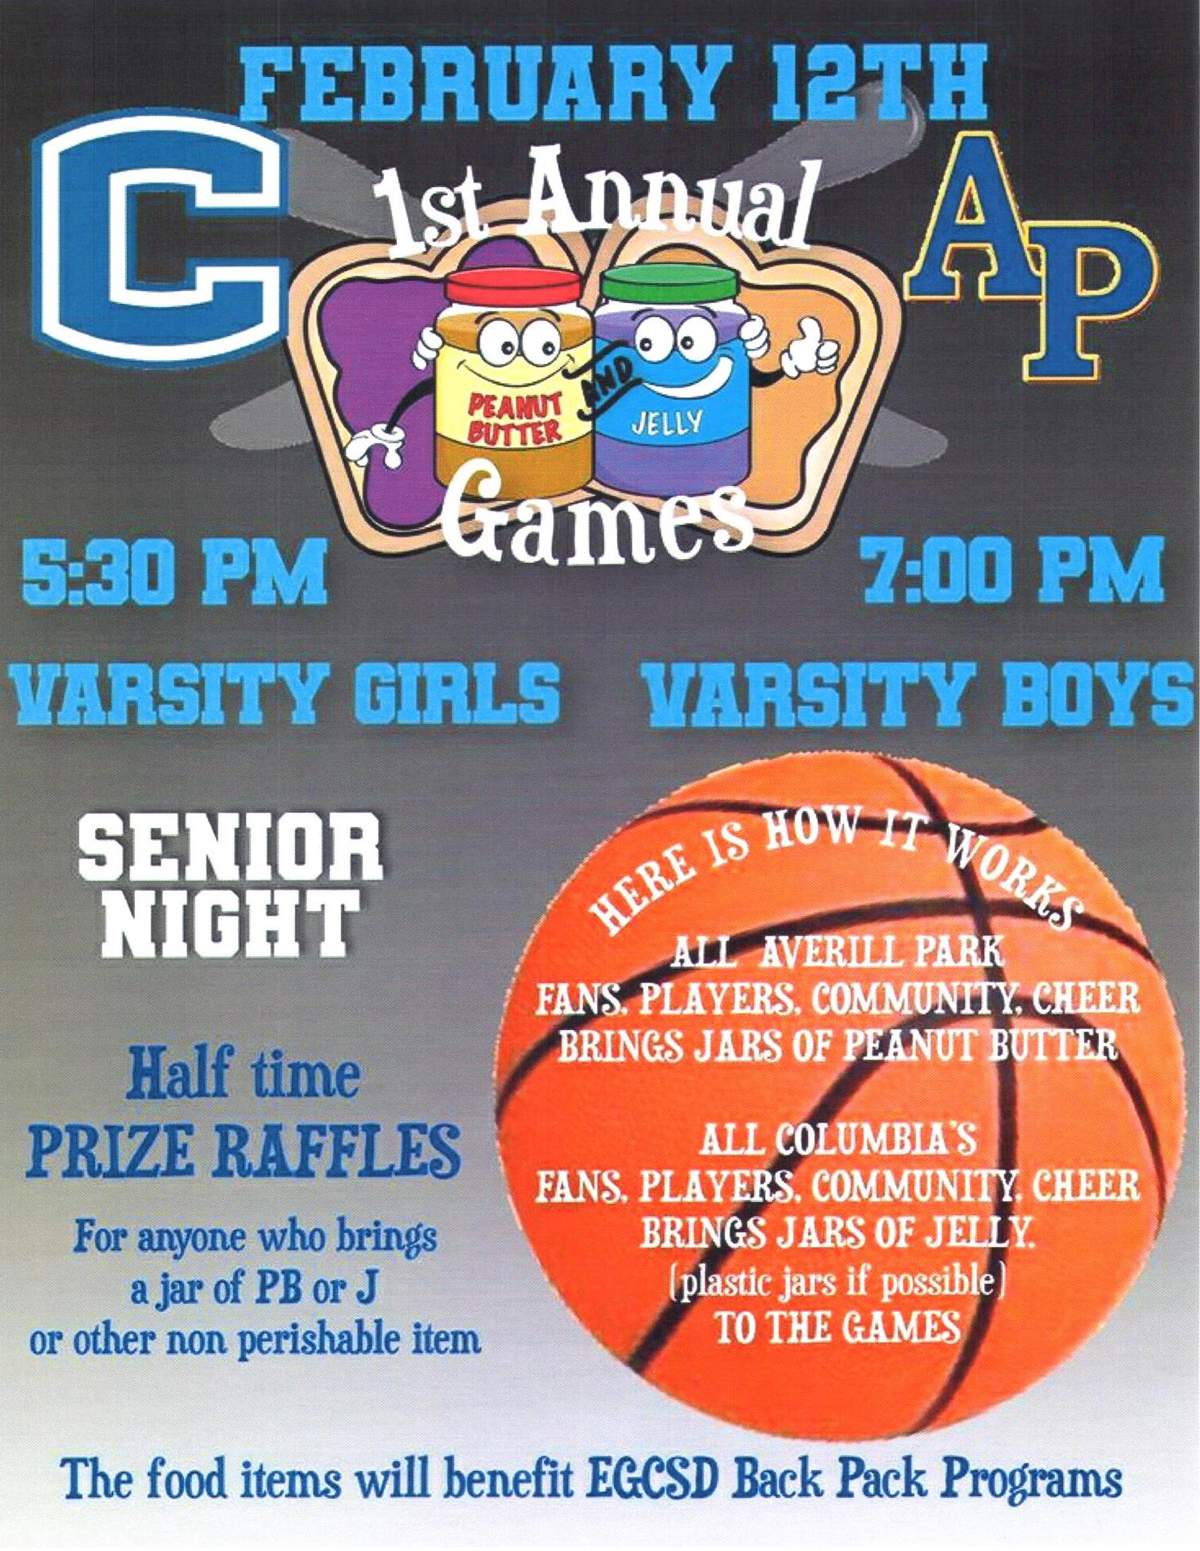 Columbia vs. Averill Park basketball game flyer